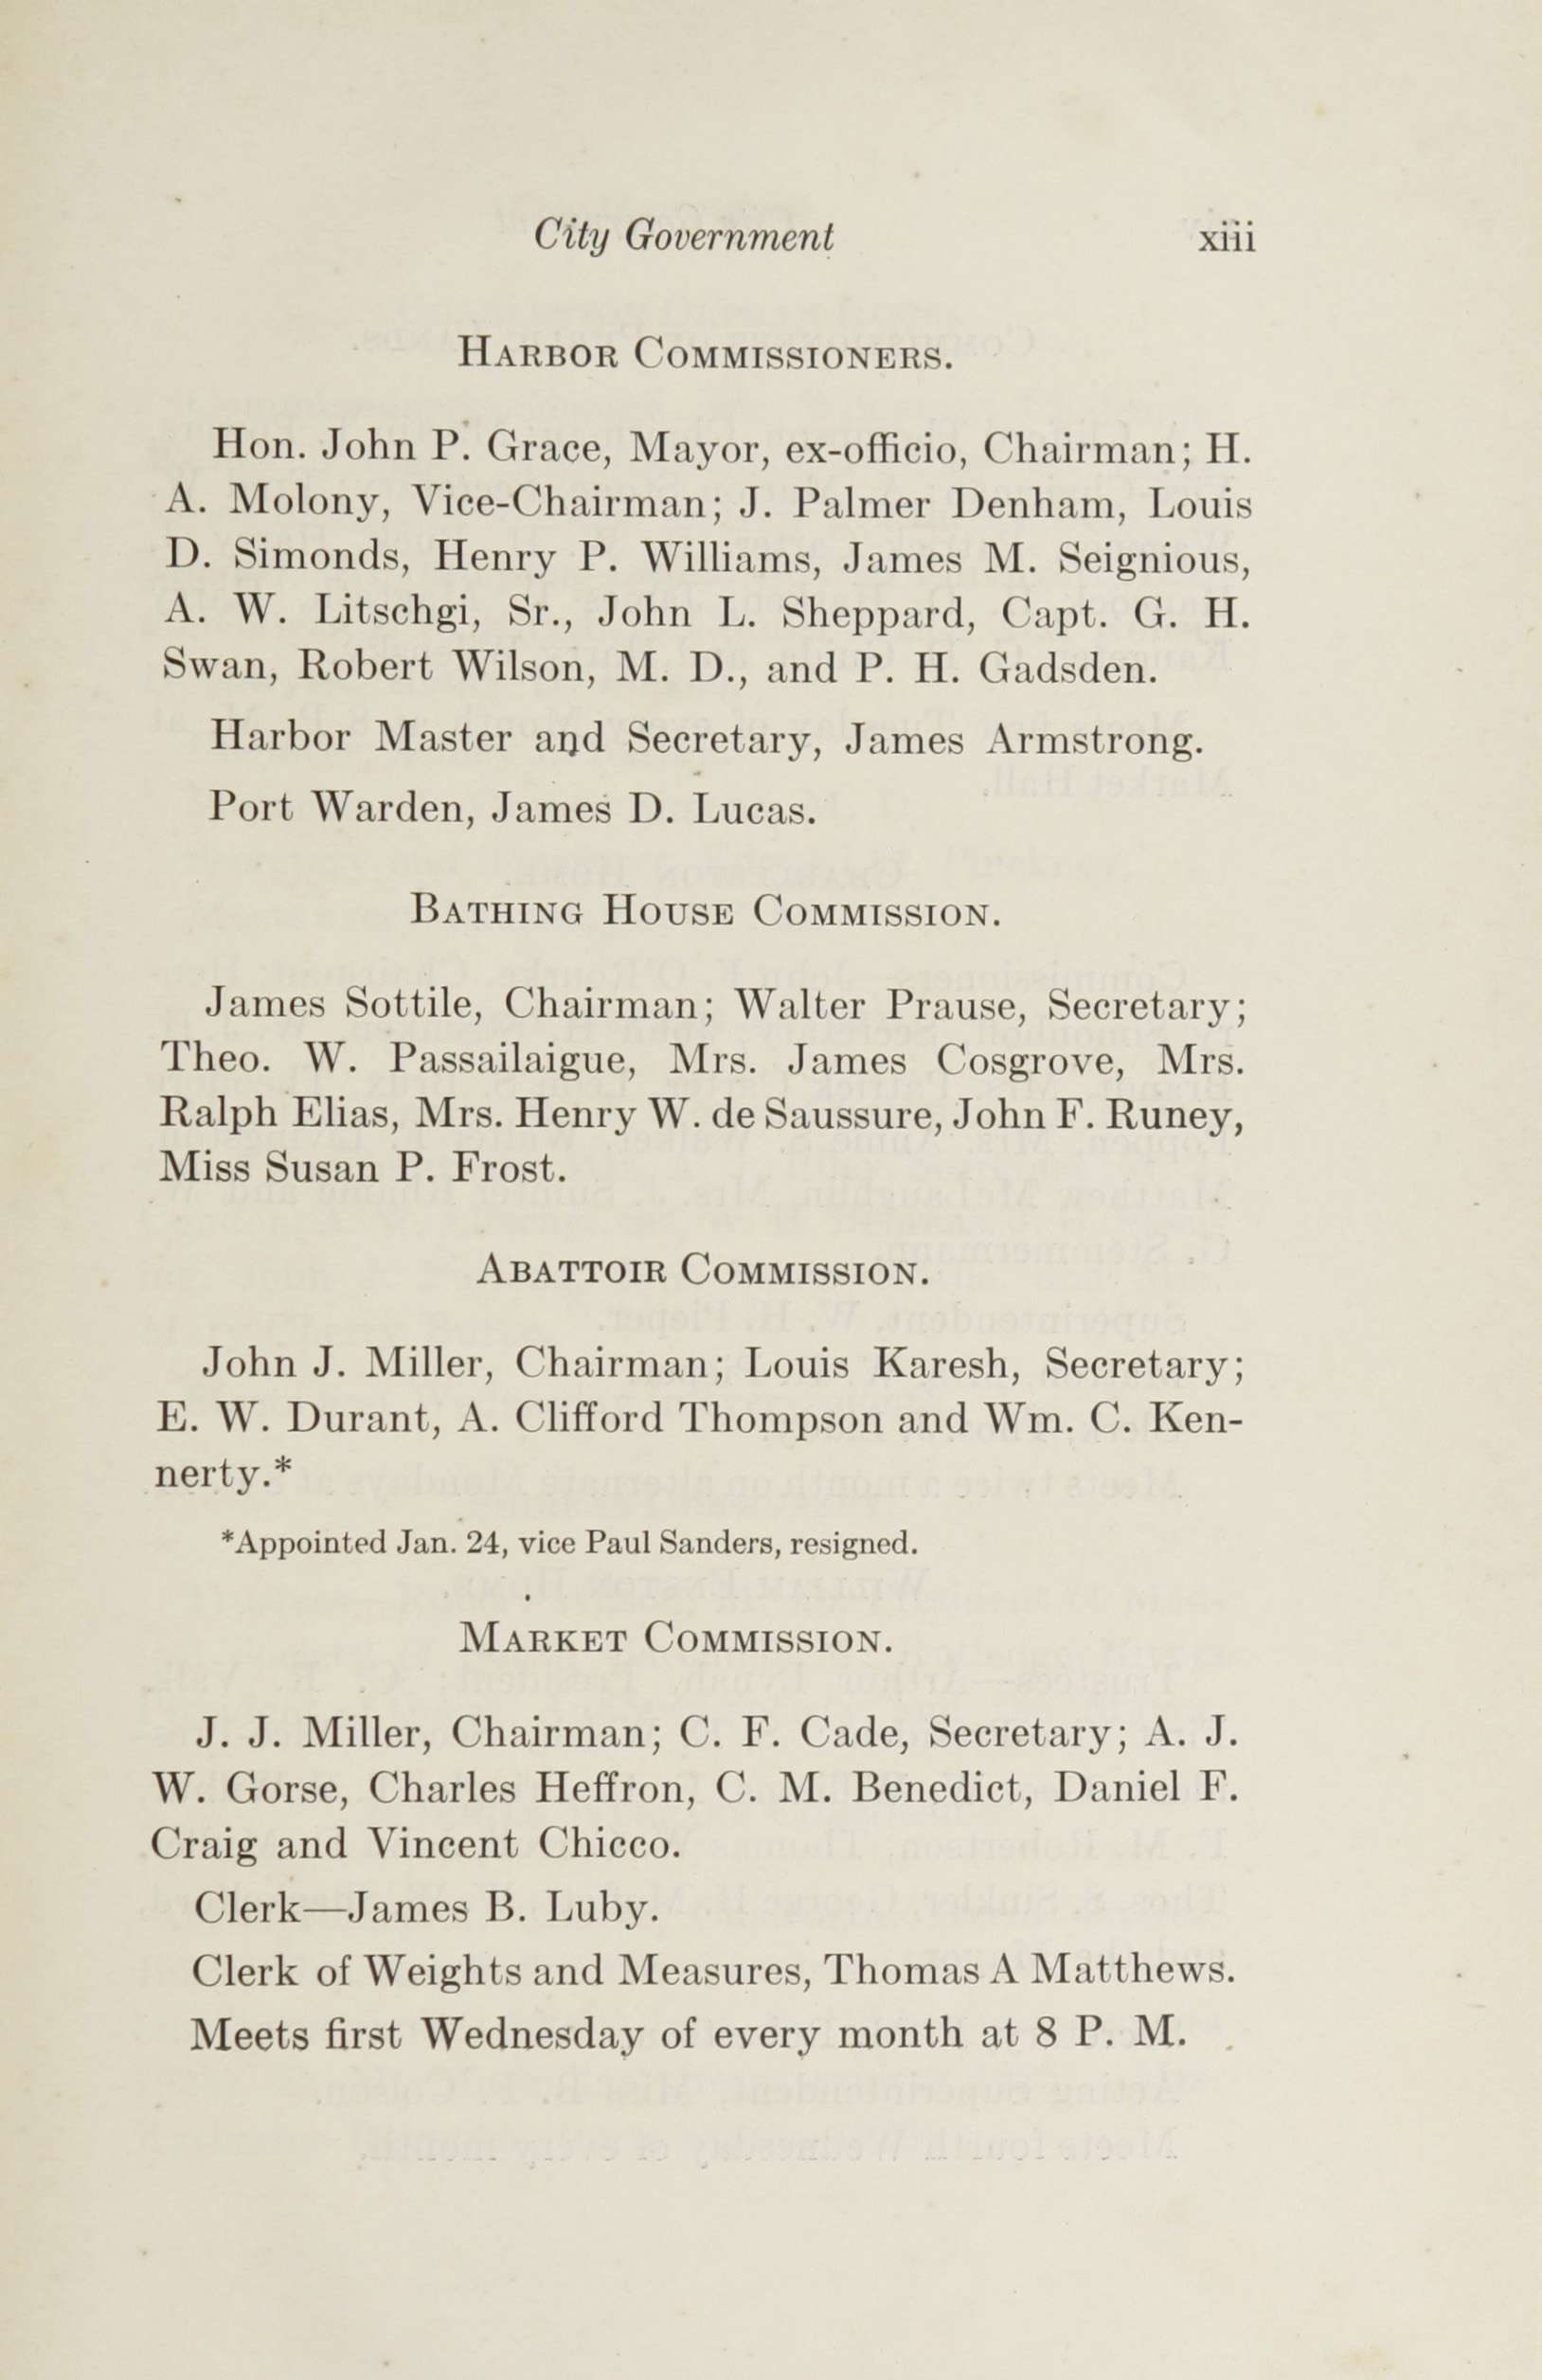 Charleston Yearbook, 1922, page xiii